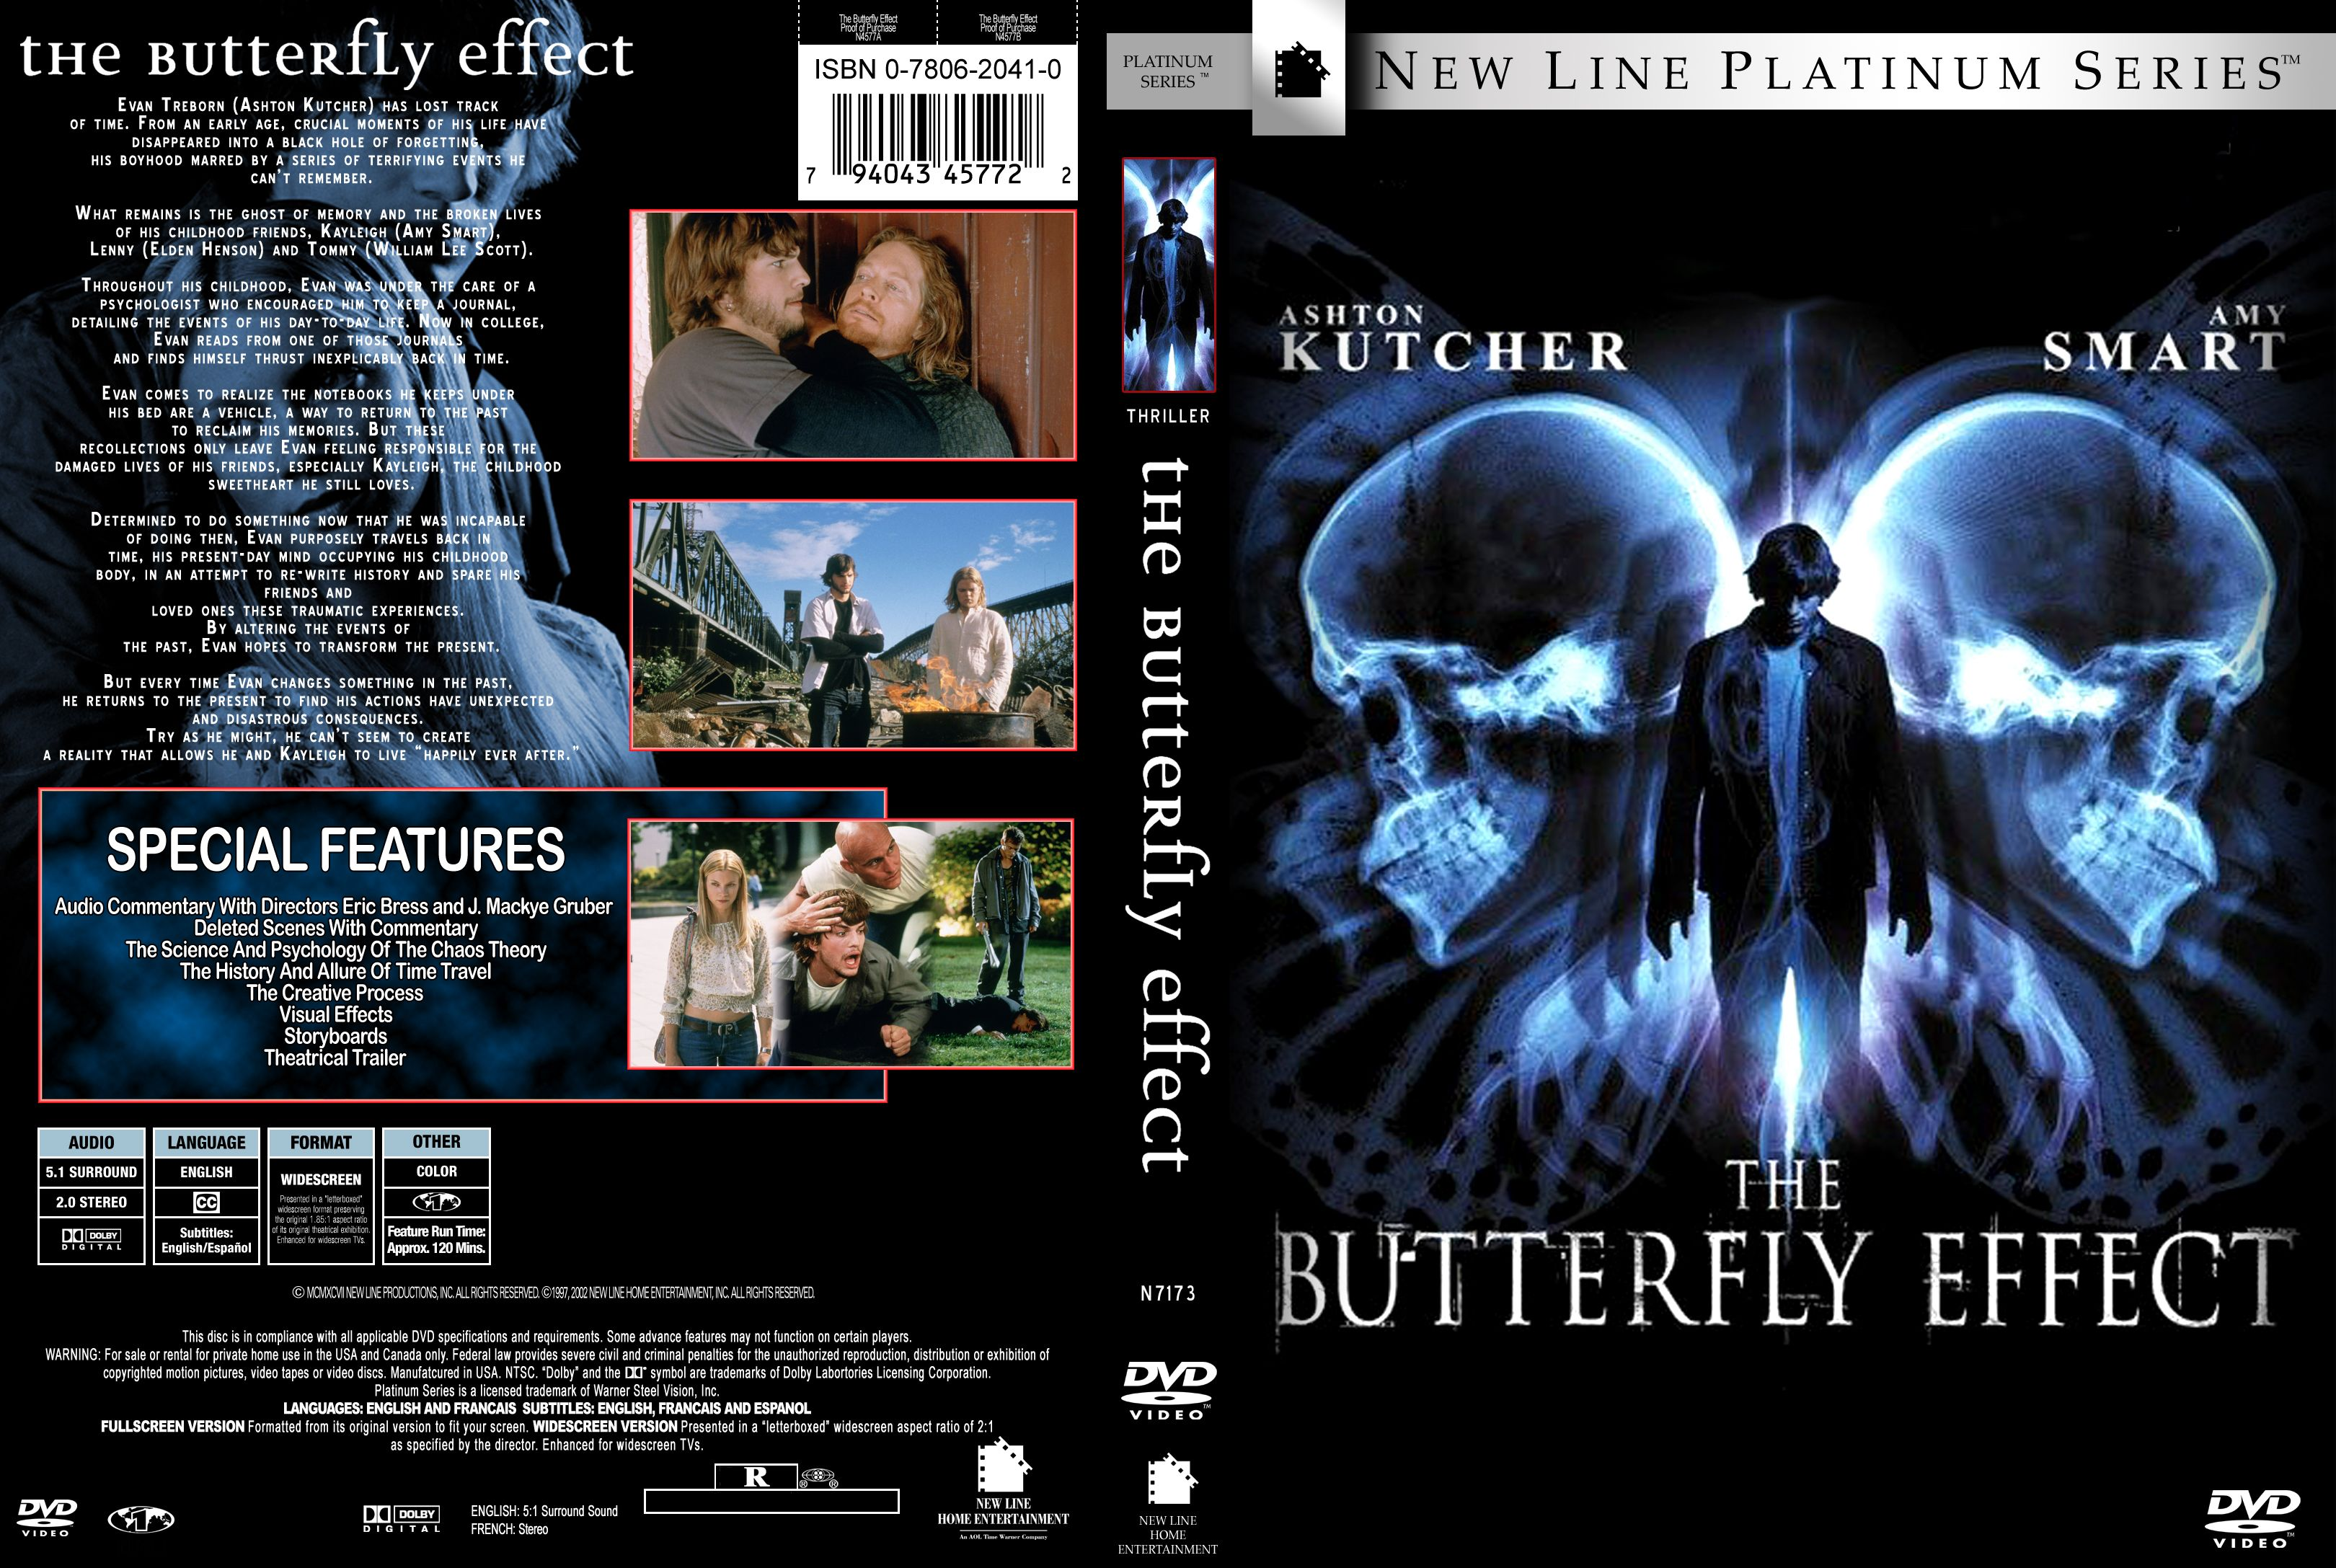 an analysis of the film butterfly effect Film analysis: - structure (eg avatar, momento, the butterfly effect) - selection of character - camera angles (eg low shot, high angle, birds eye view, etc) - dialogue.